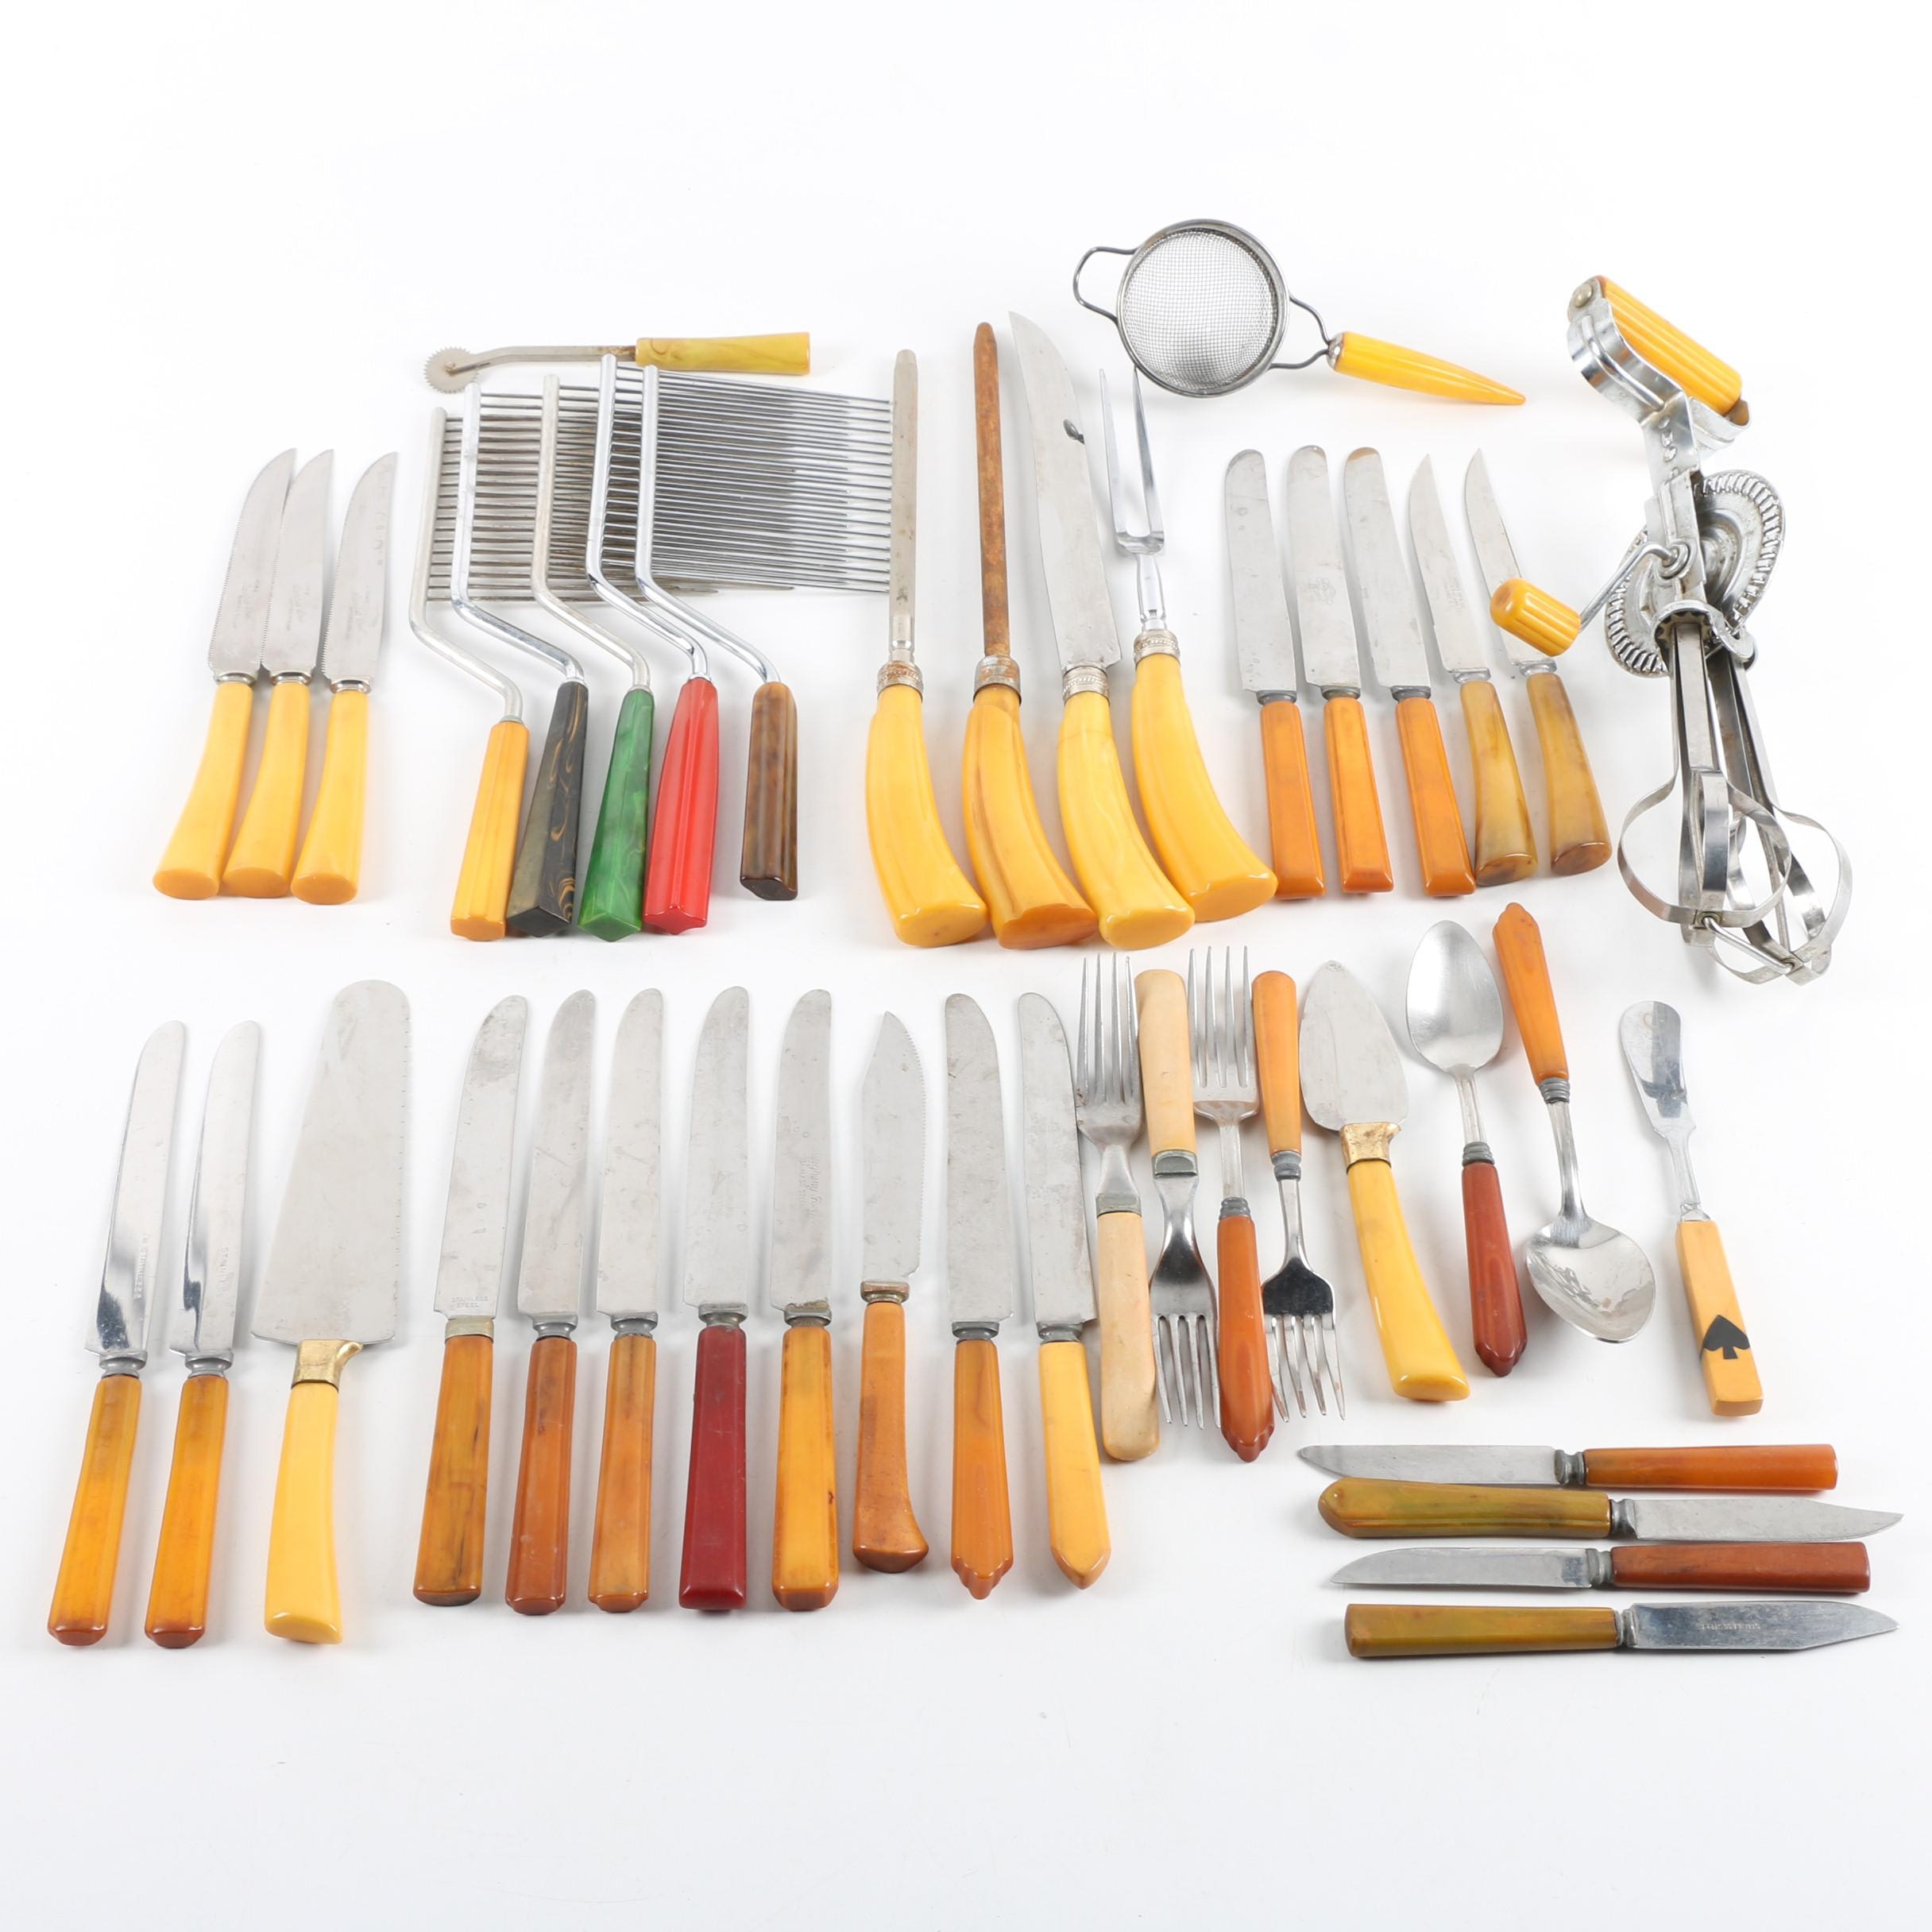 Flatware, Utensil, and Knife Assortment with Plastic Handles